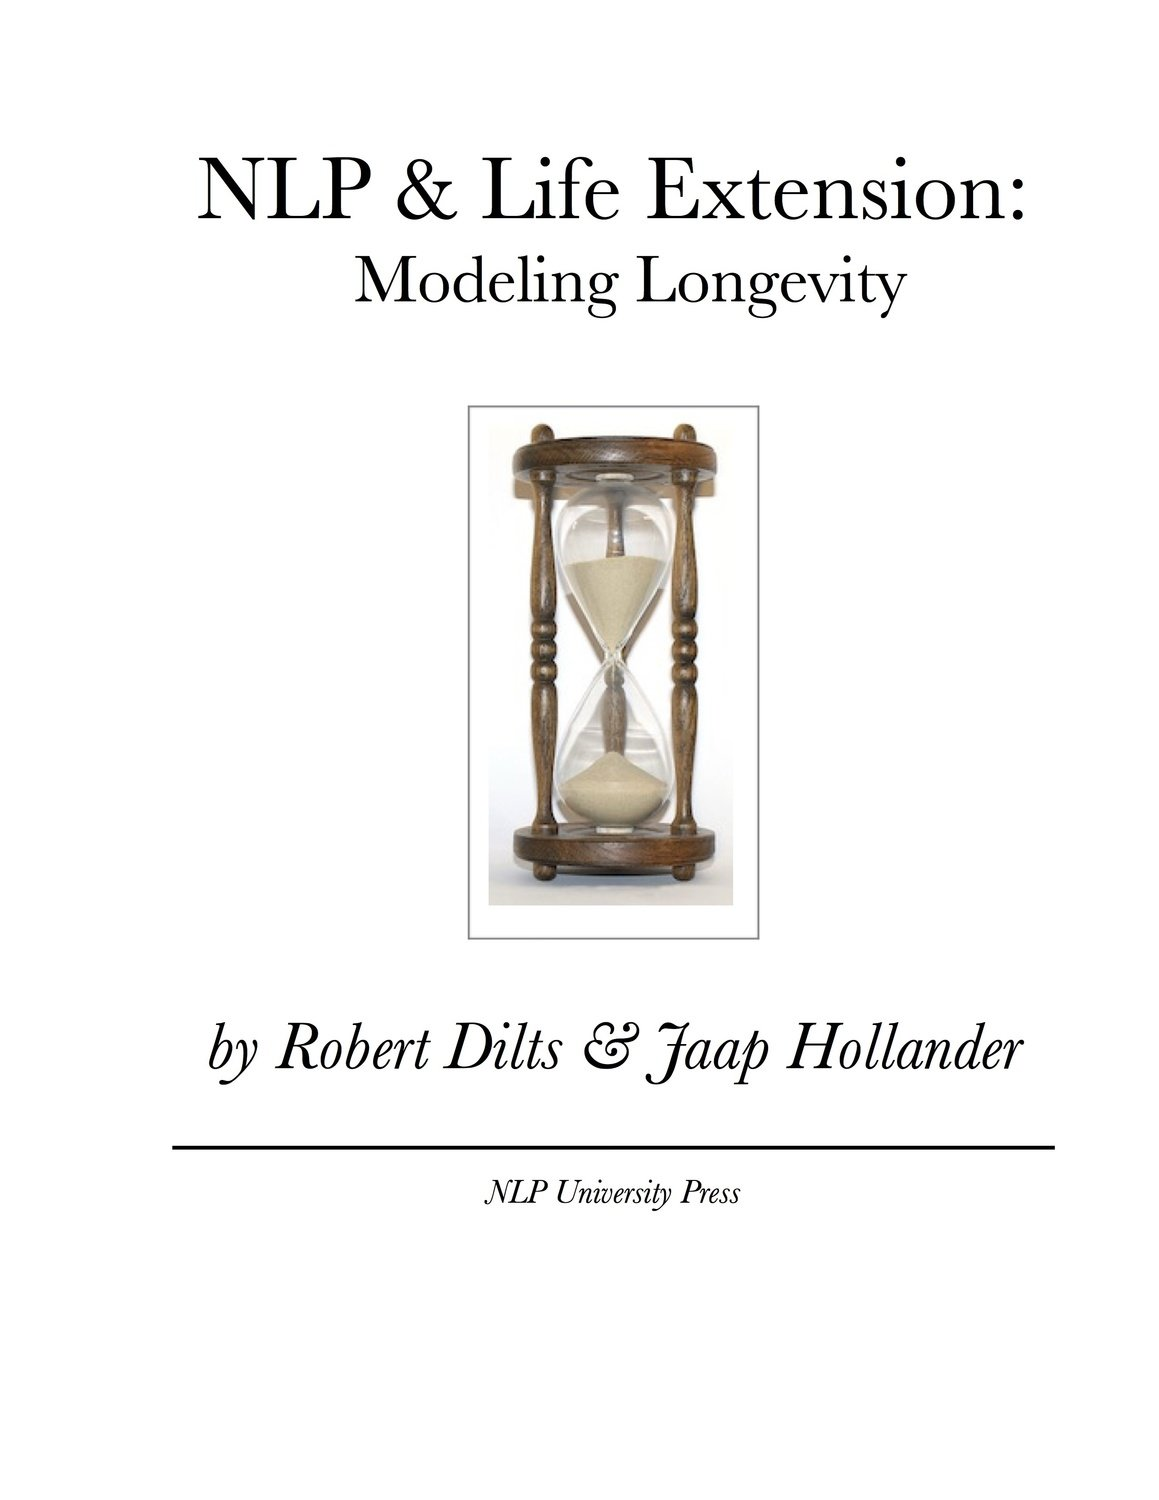 NLP & Life Extension: Modeling Longevity [Booklet]